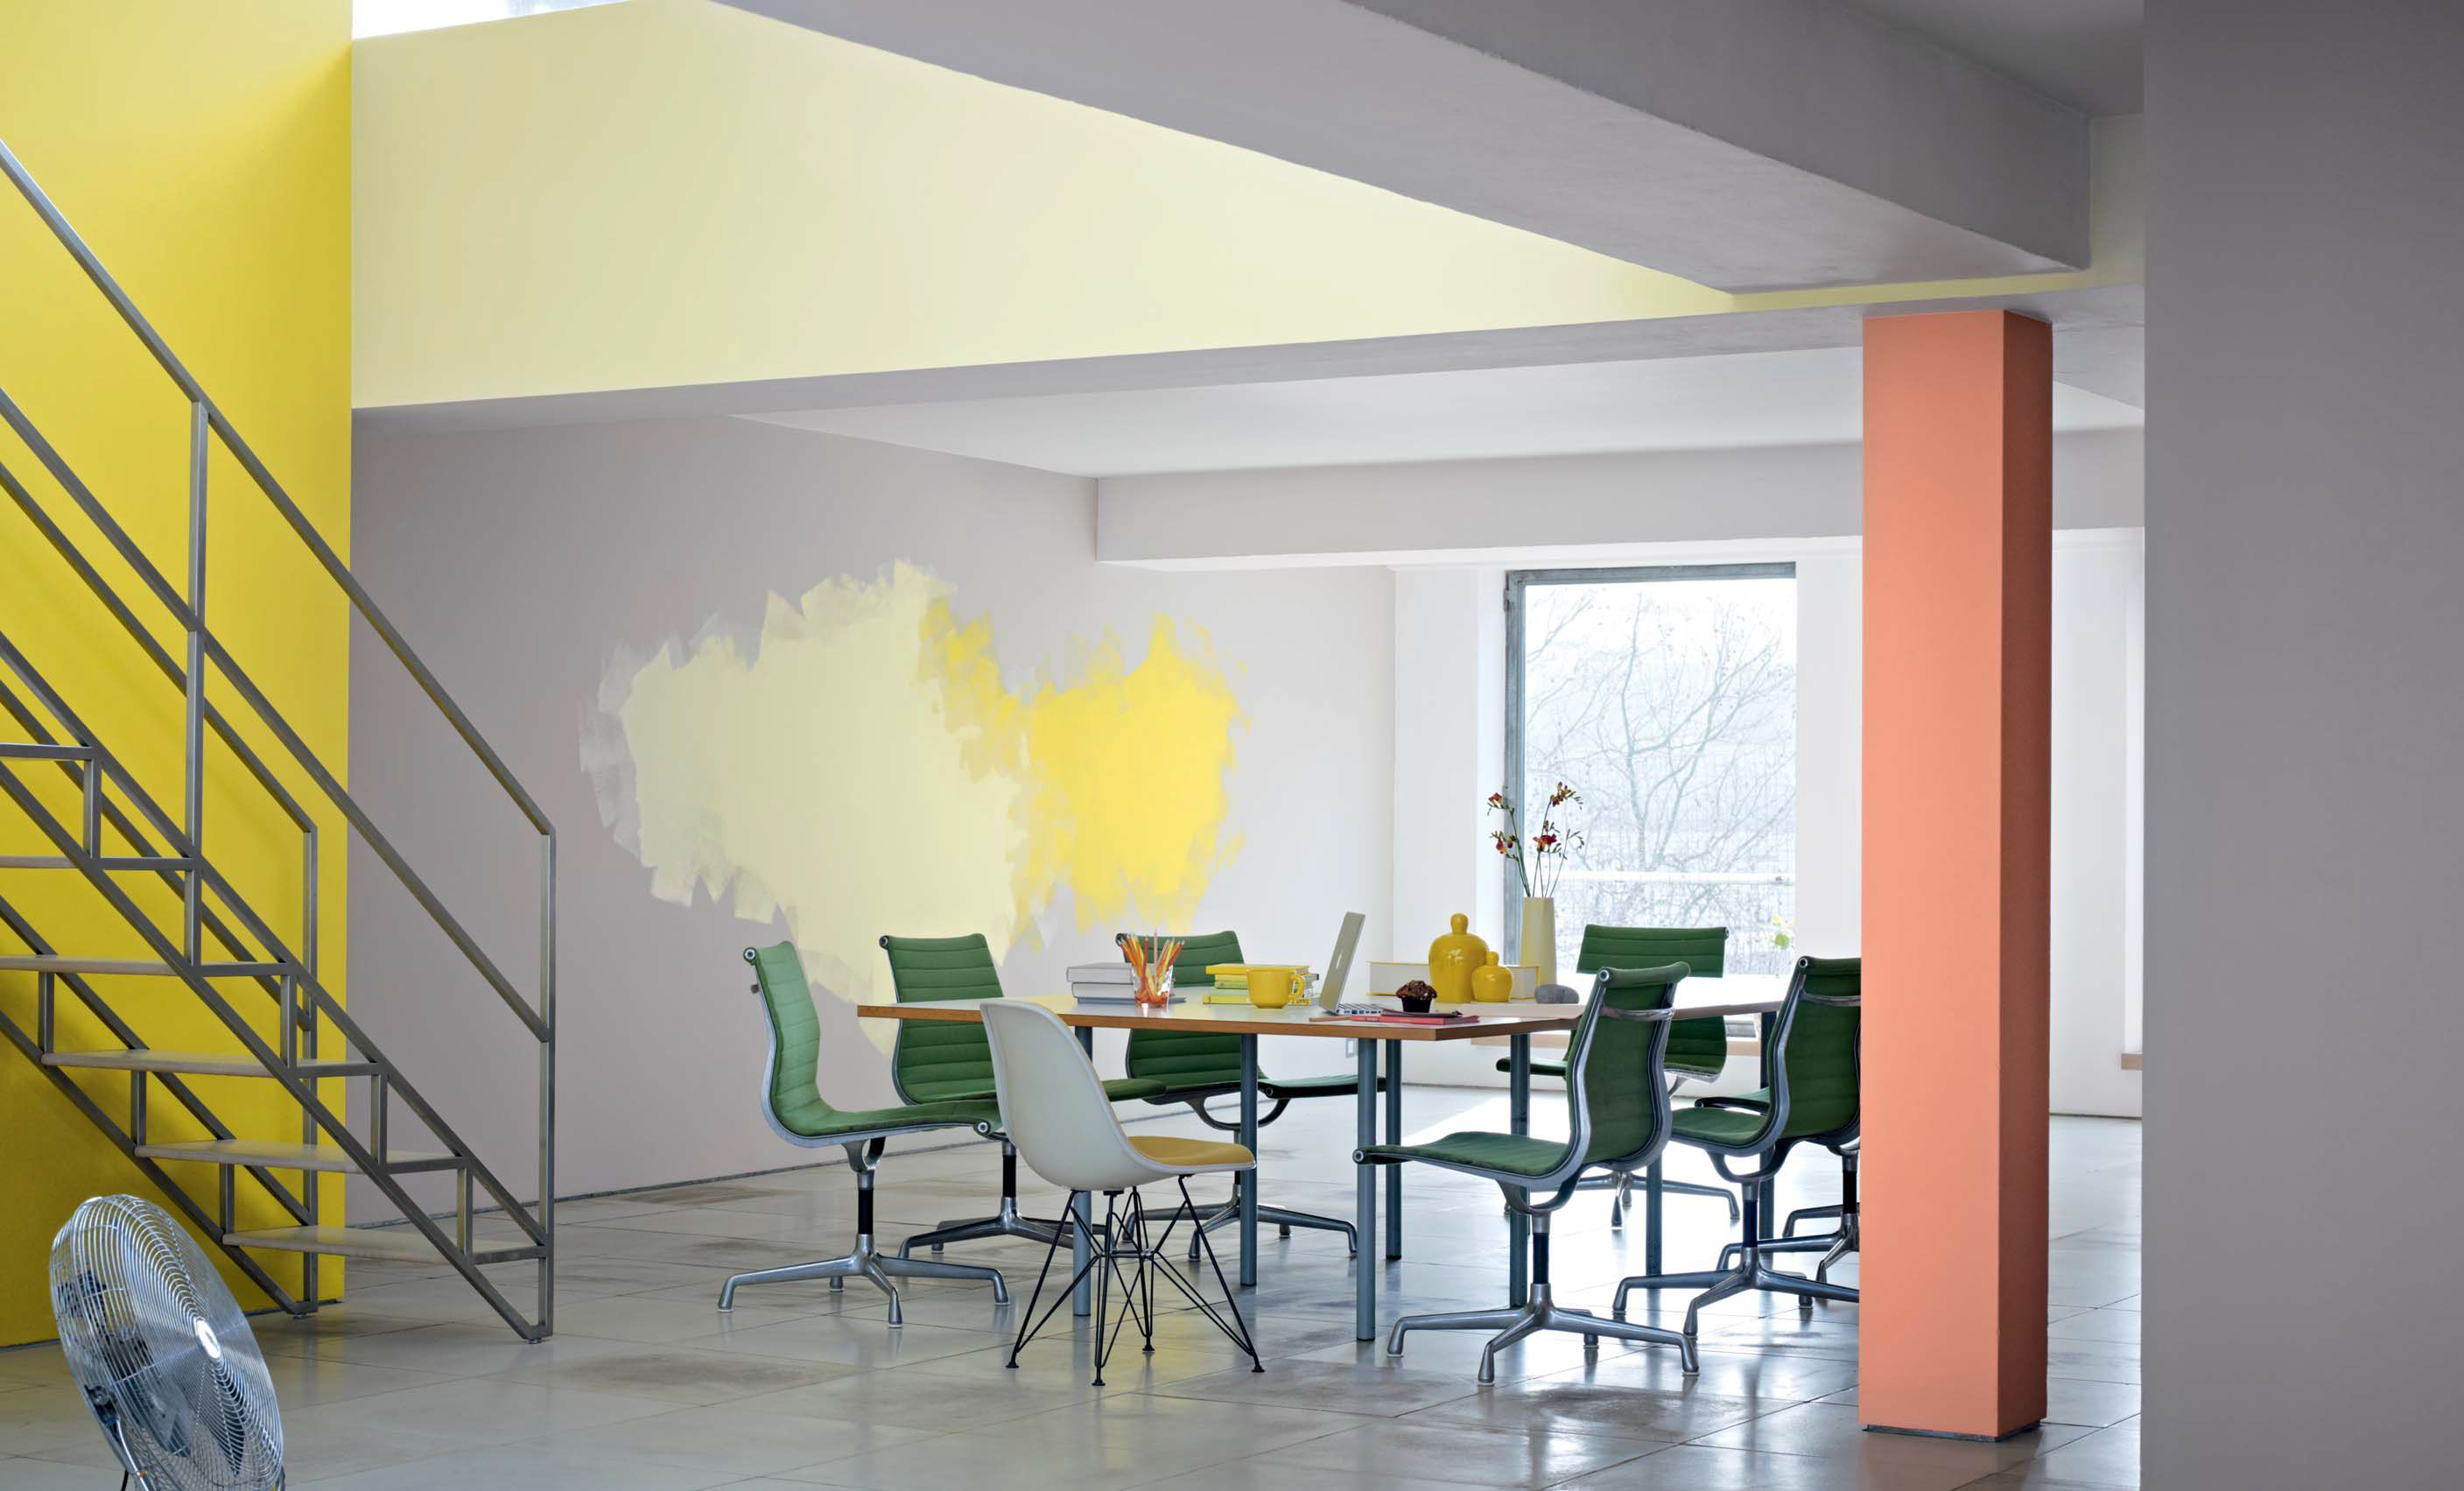 Trend Collectiv pasion -Colour Futures 2013 de la Akzo Nobel